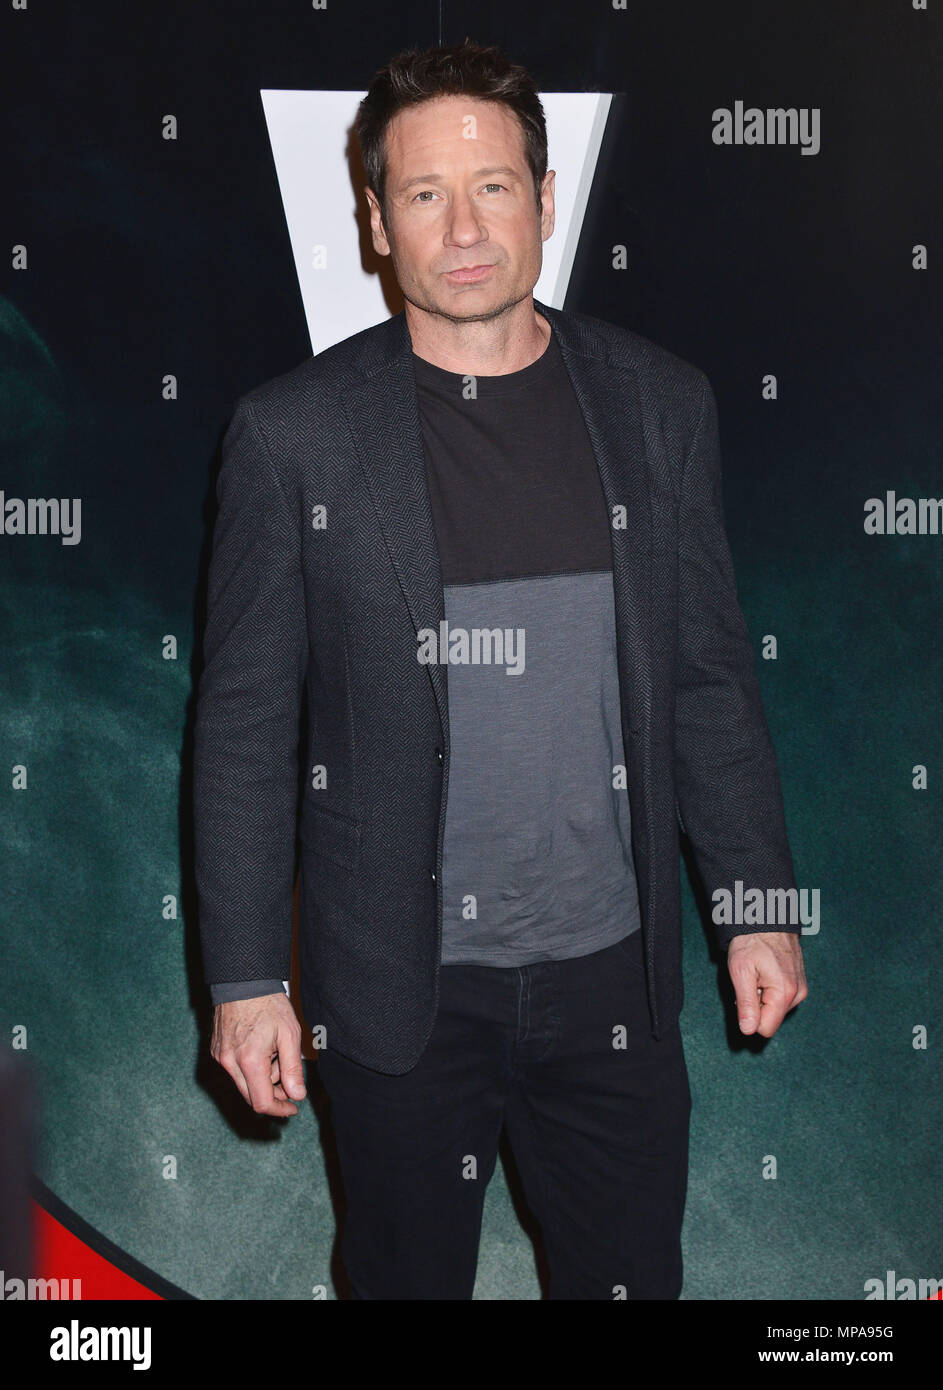 David Duchovny 022  at The X-Files Premiere at California Science Center in Los Angeles, CA  January 12, 2016.David Duchovny 022 ------------- Red Carpet Event, Vertical, USA, Film Industry, Celebrities,  Photography, Bestof, Arts Culture and Entertainment, Topix Celebrities fashion /  Vertical, Best of, Event in Hollywood Life - California,  Red Carpet and backstage, USA, Film Industry, Celebrities,  movie celebrities, TV celebrities, Music celebrities, Photography, Bestof, Arts Culture and Entertainment,  Topix, Three Quarters, vertical, one person,, from the year , 2016, inquiry tsuni@Gamma - Stock Image